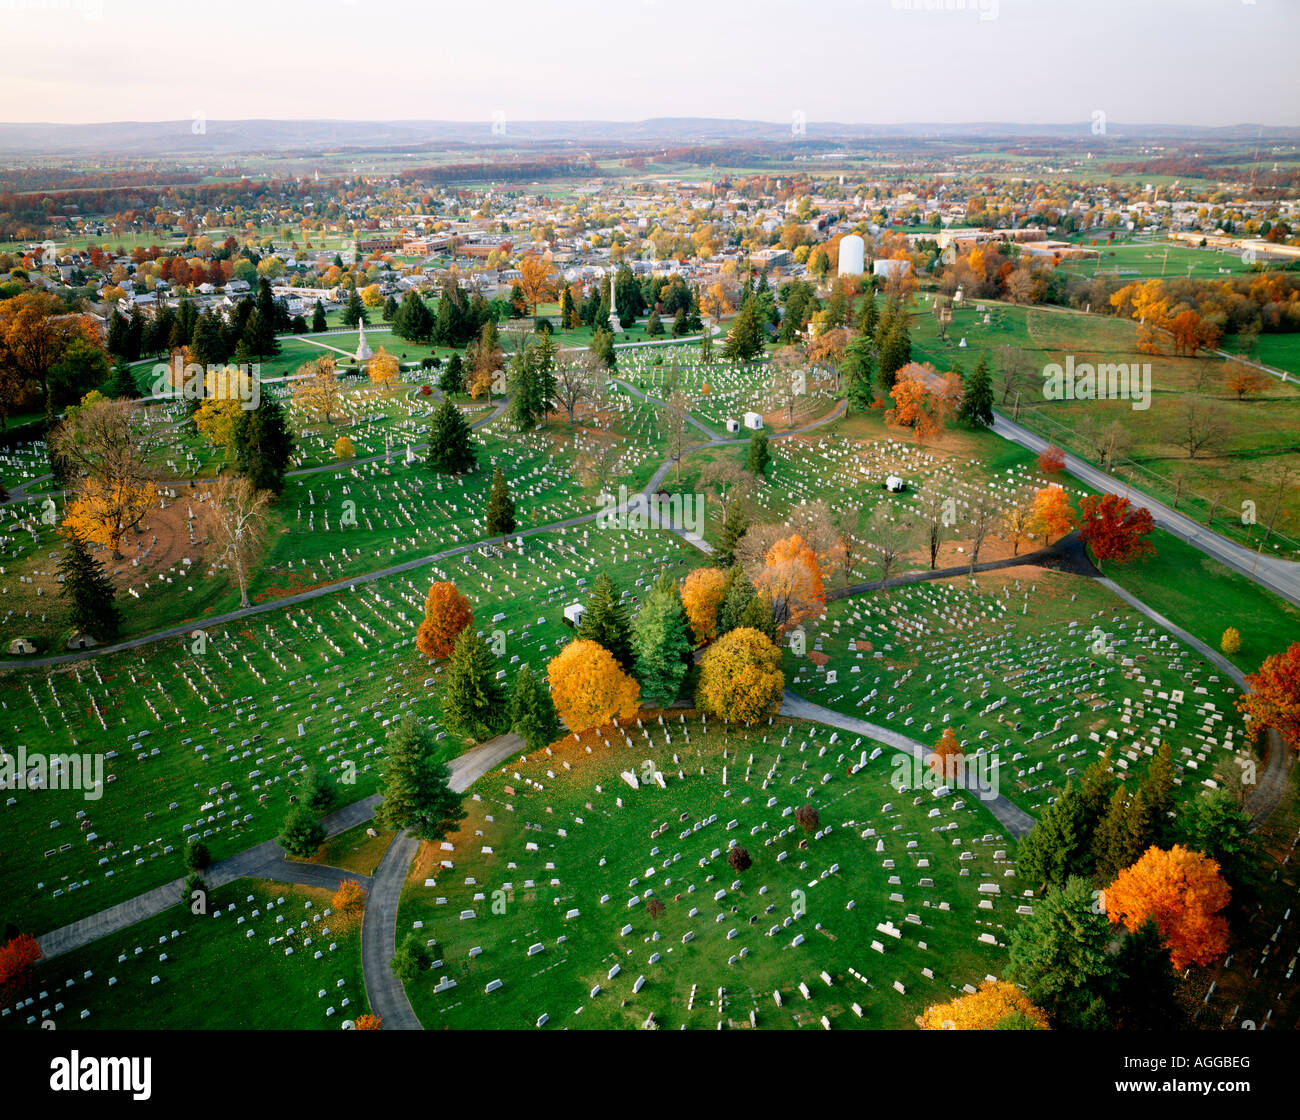 National & Evergreen Cemeteries From Observation Tower, Gettysburg National Military Park, Adams County, Pennsylvania, Stock Photo